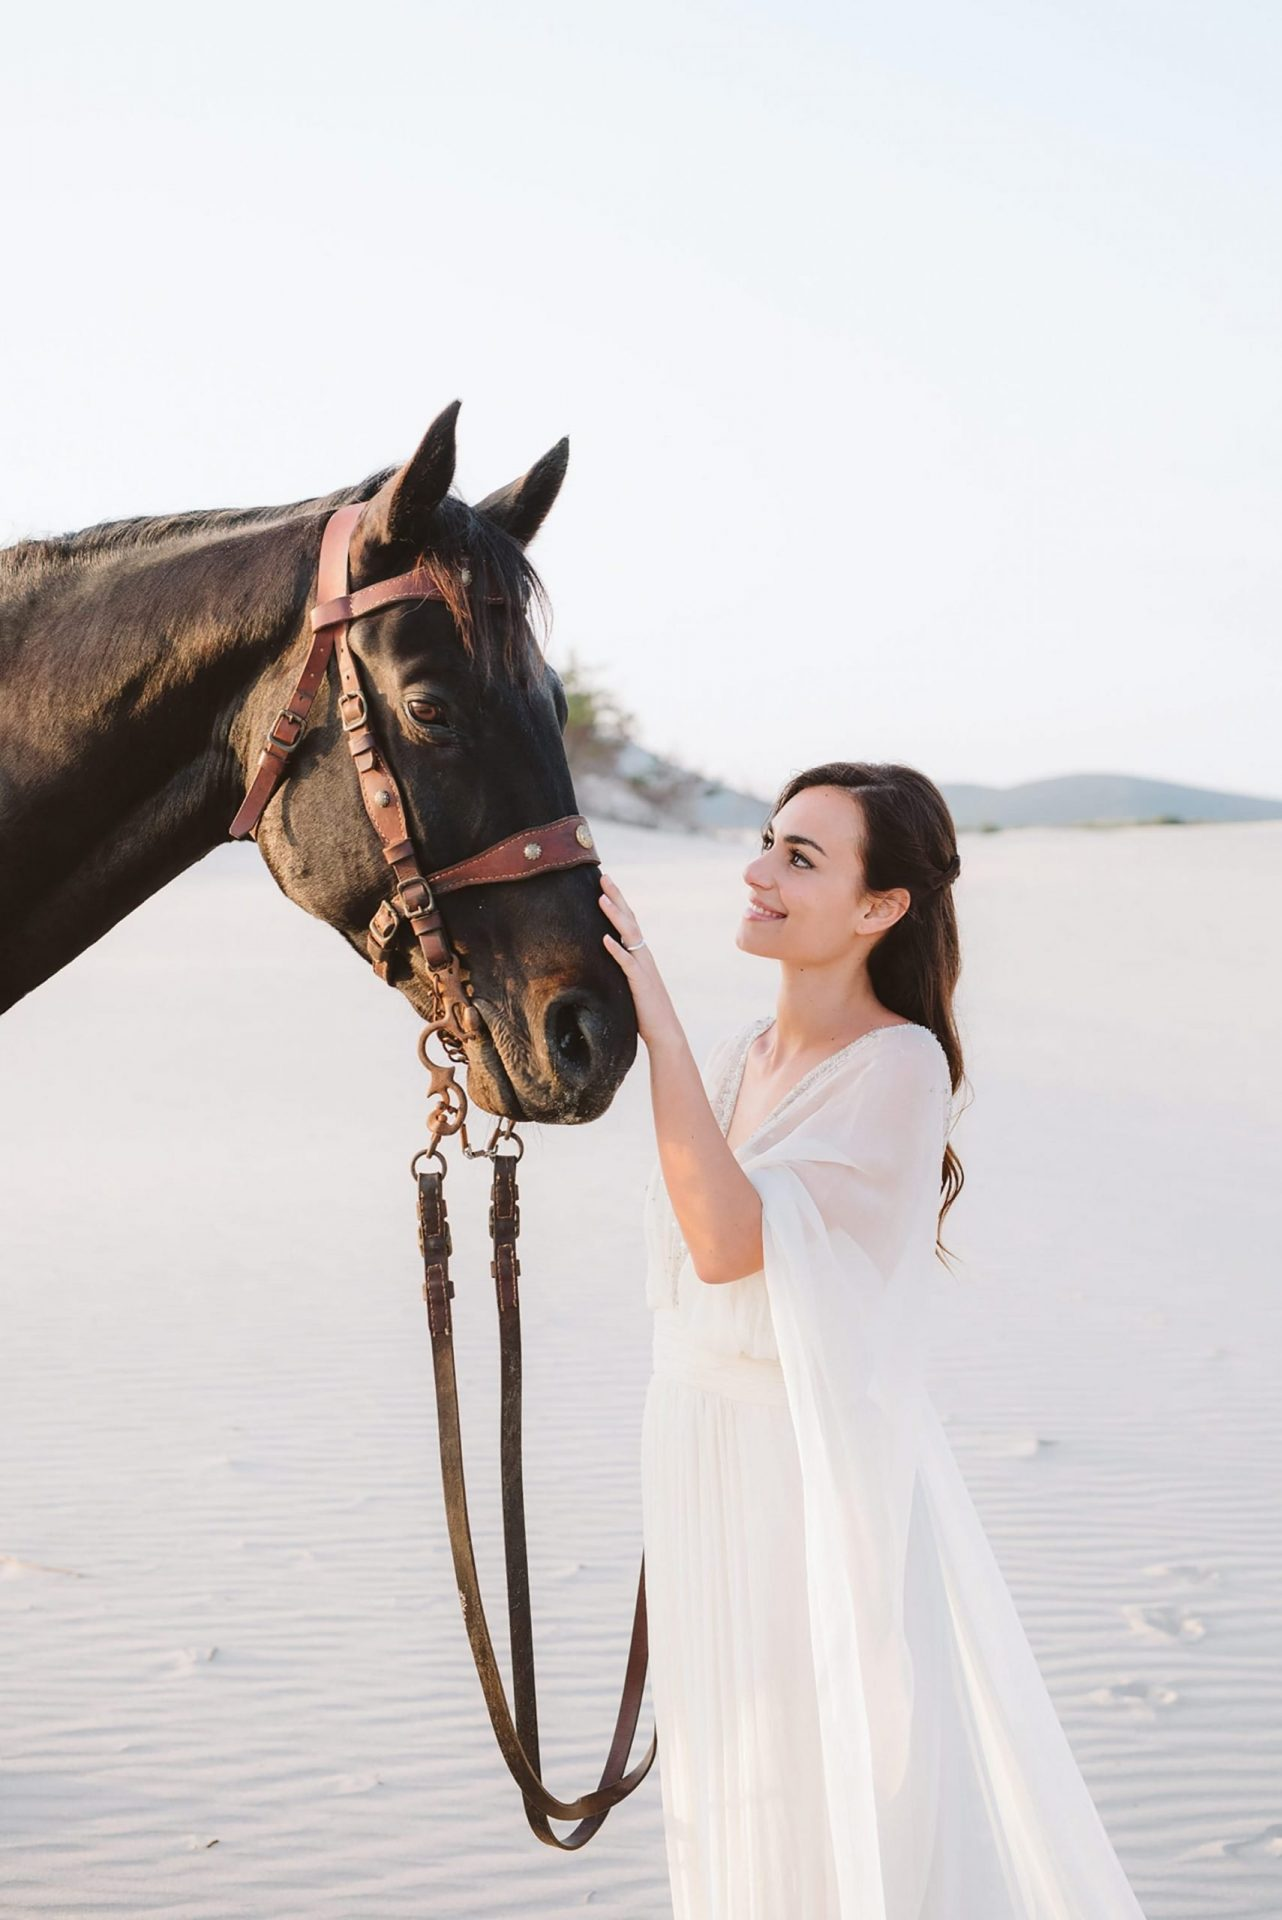 Elopement in Sardinia, the bride with horse